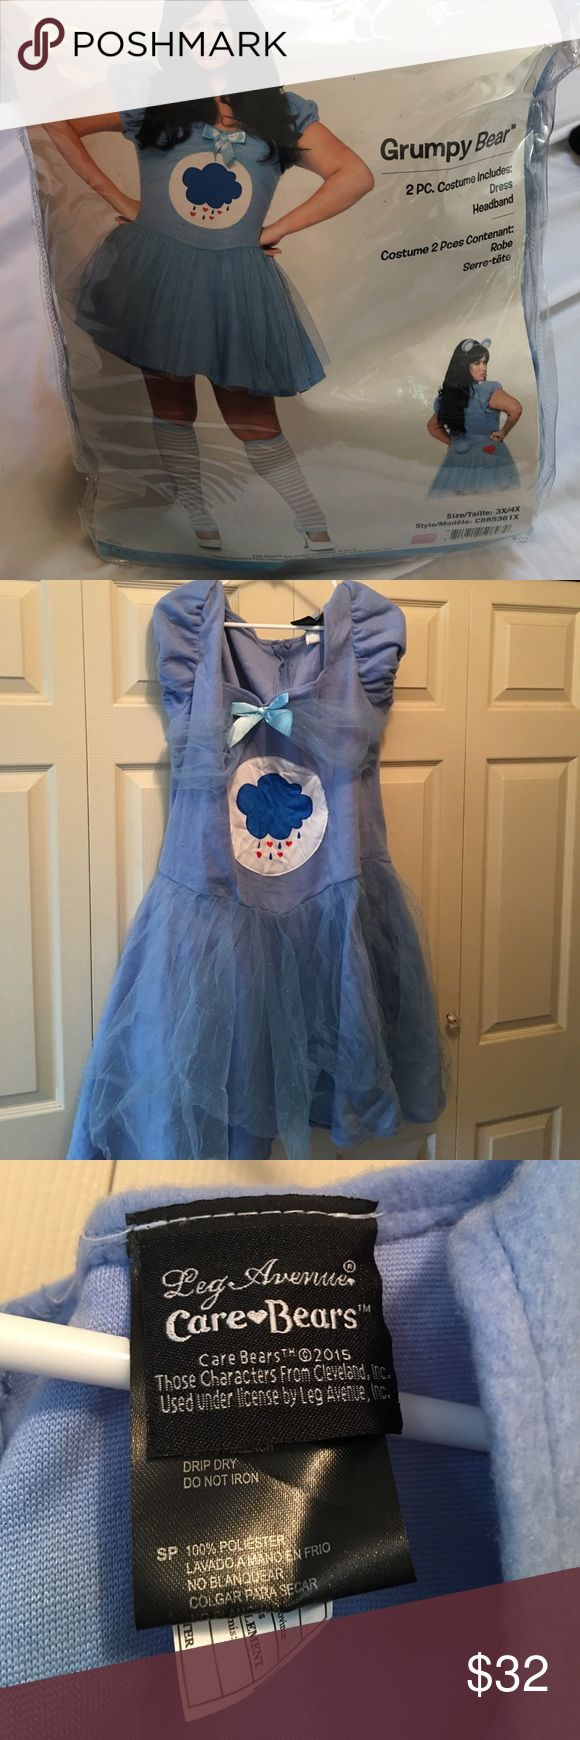 ❤️Care Bears ❤️by Leg Avenue Costume 3x/4x Wore this for Halloween last year for about 2 hours - received many compliments because it was so darn cute. Comes with dress and headband. No signs of wear or tear. Come from smoke and pet free home. Leg Avenue Other